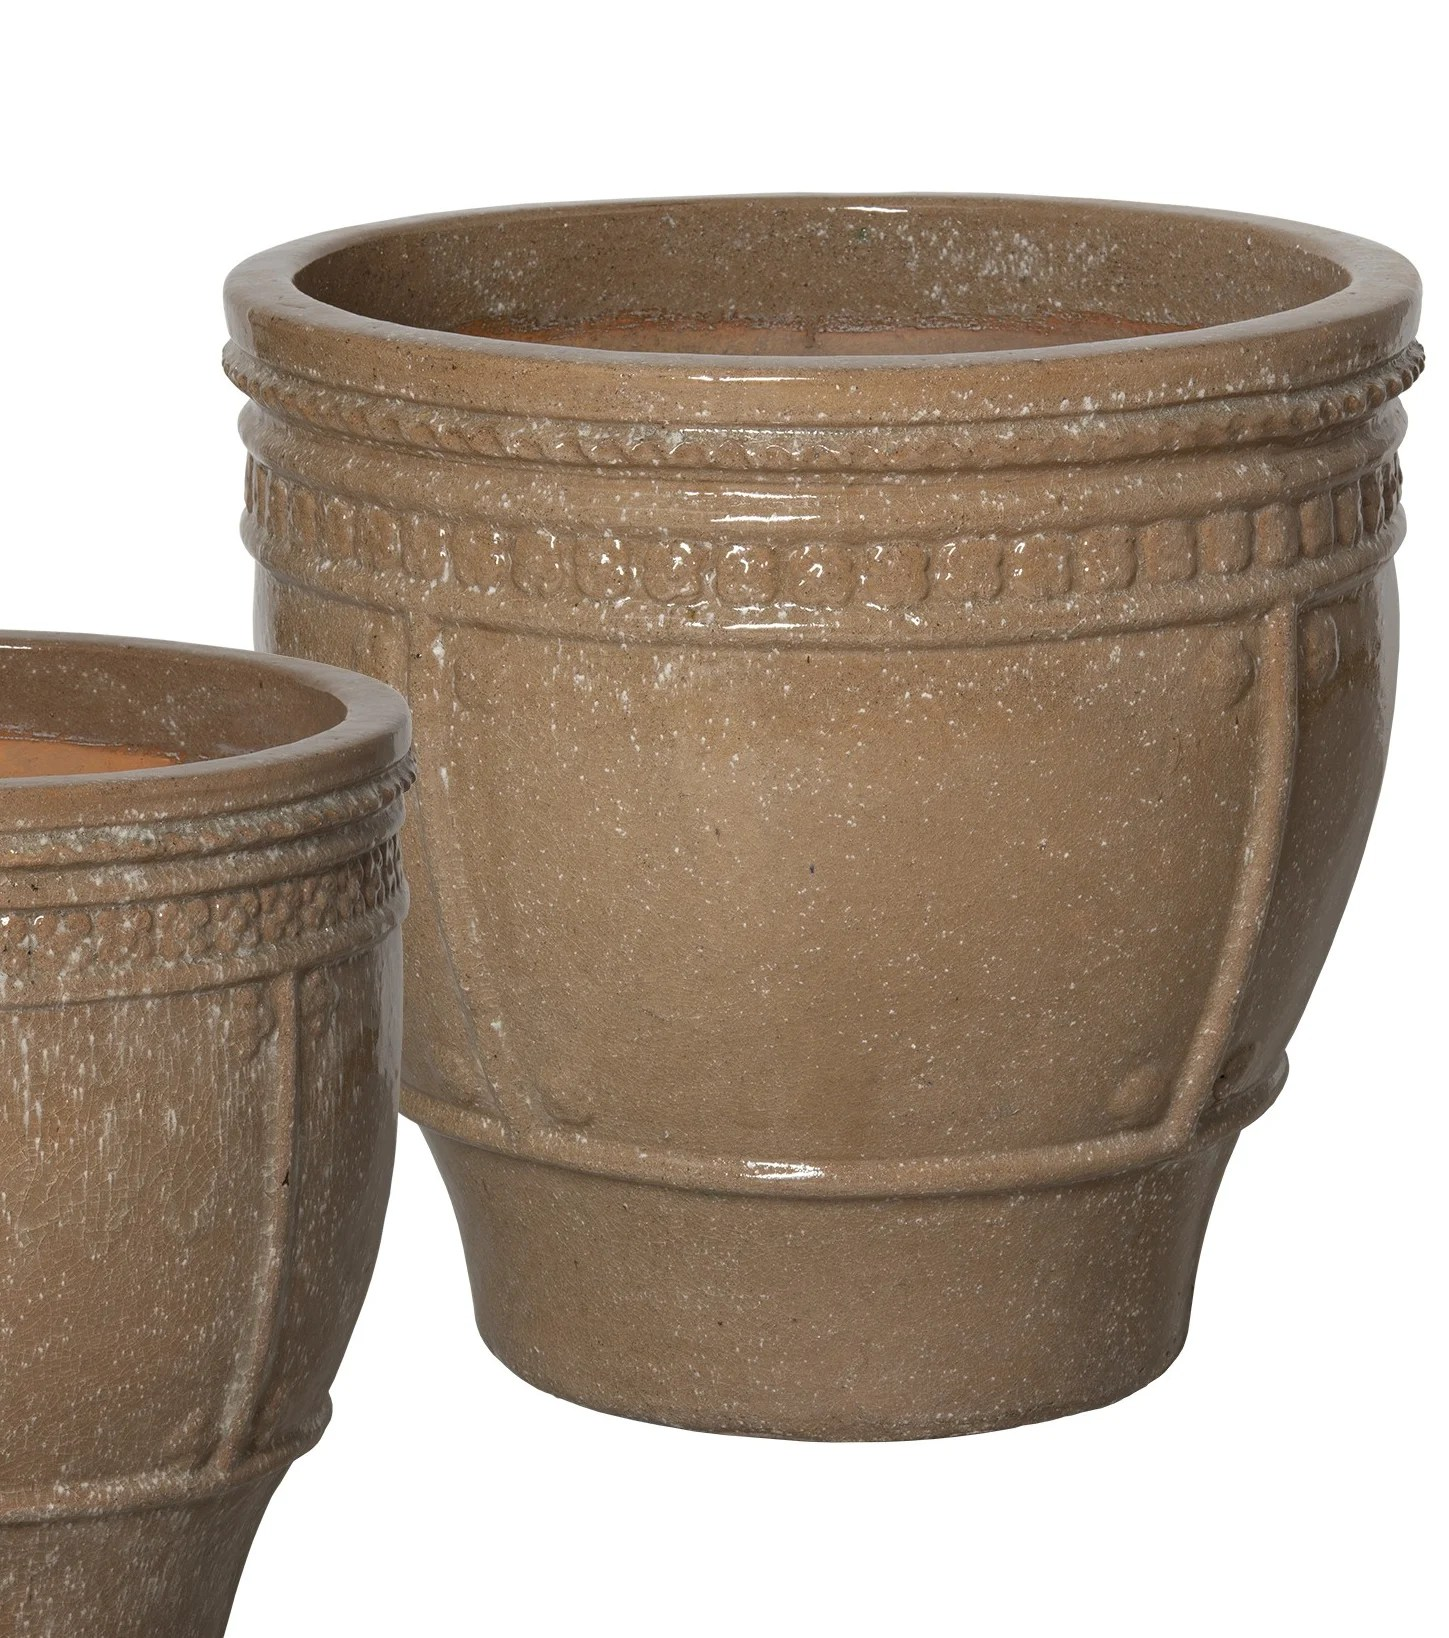 Planter Lys En Pot Emissary Bullet 4 Piece Ceramic Pot Planter Set Wayfair